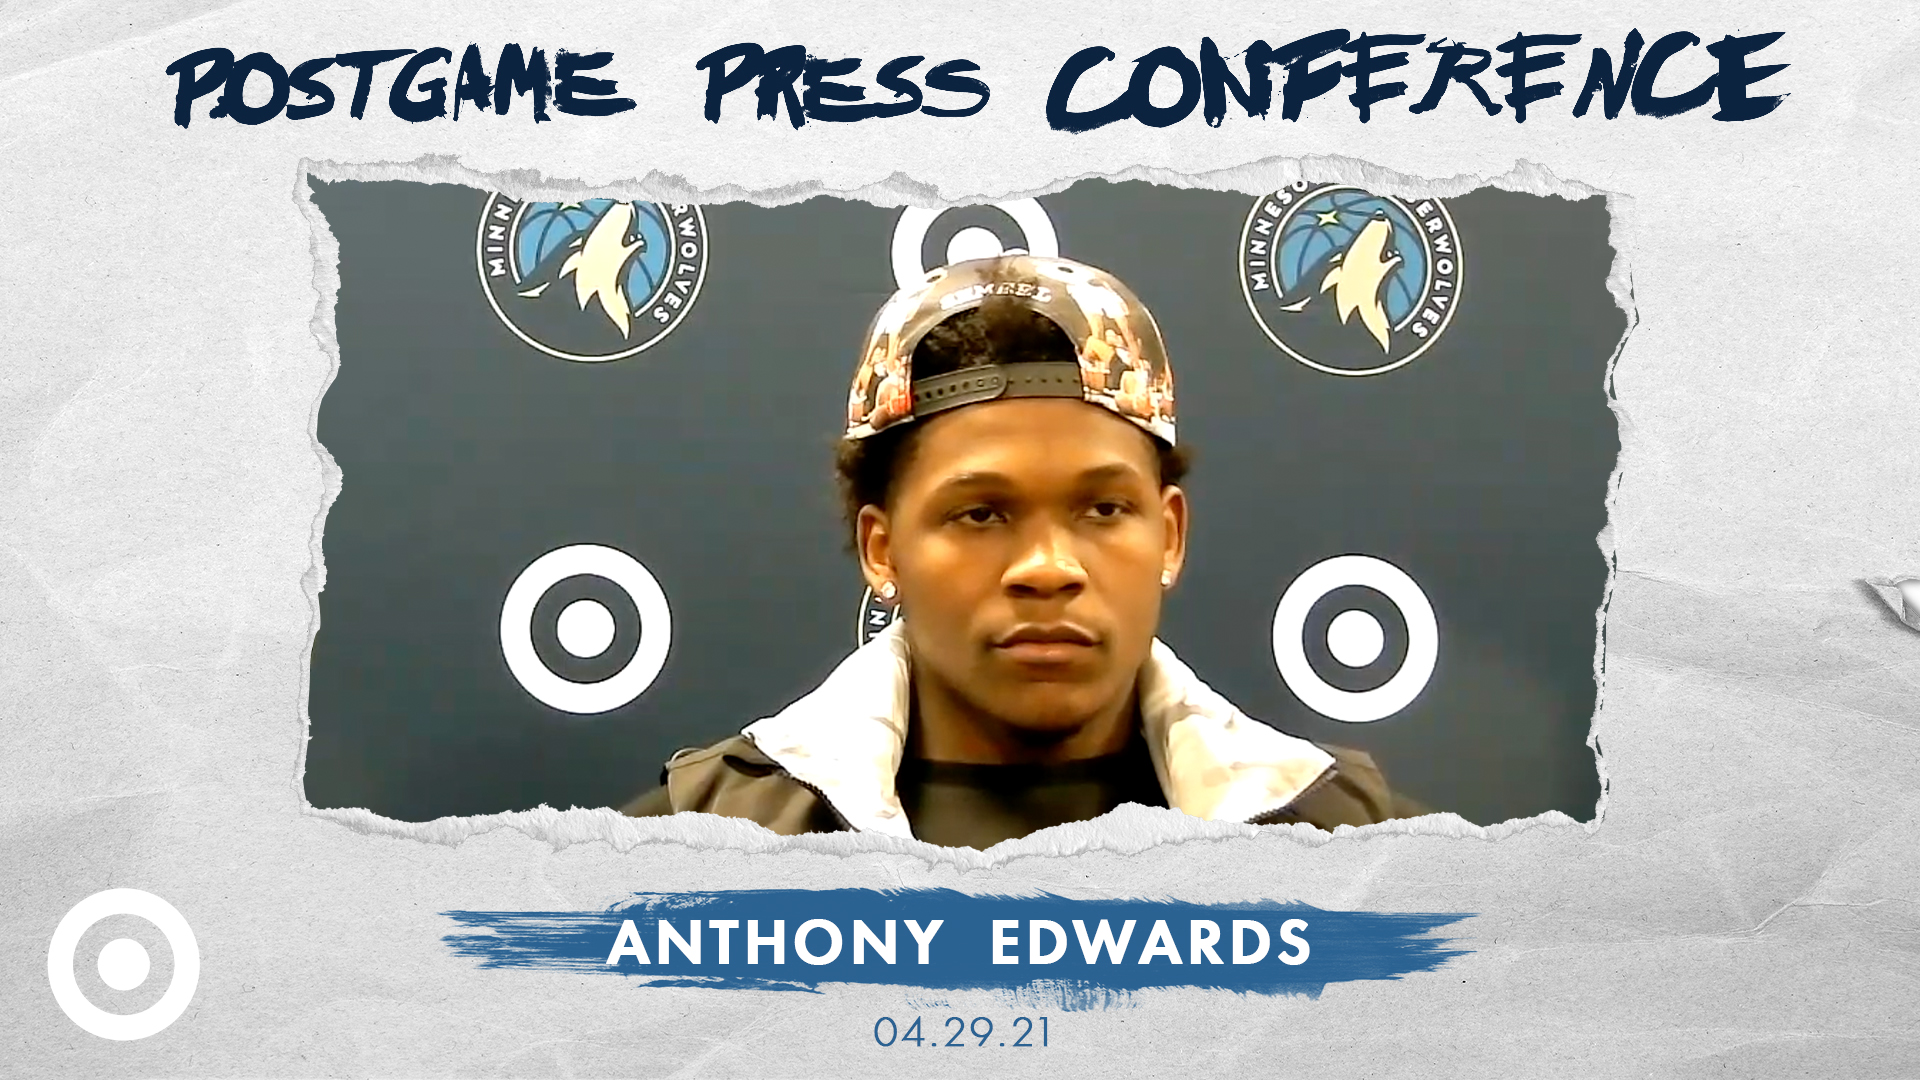 Anthony Edwards Postgame Press Conference - April 29, 2021